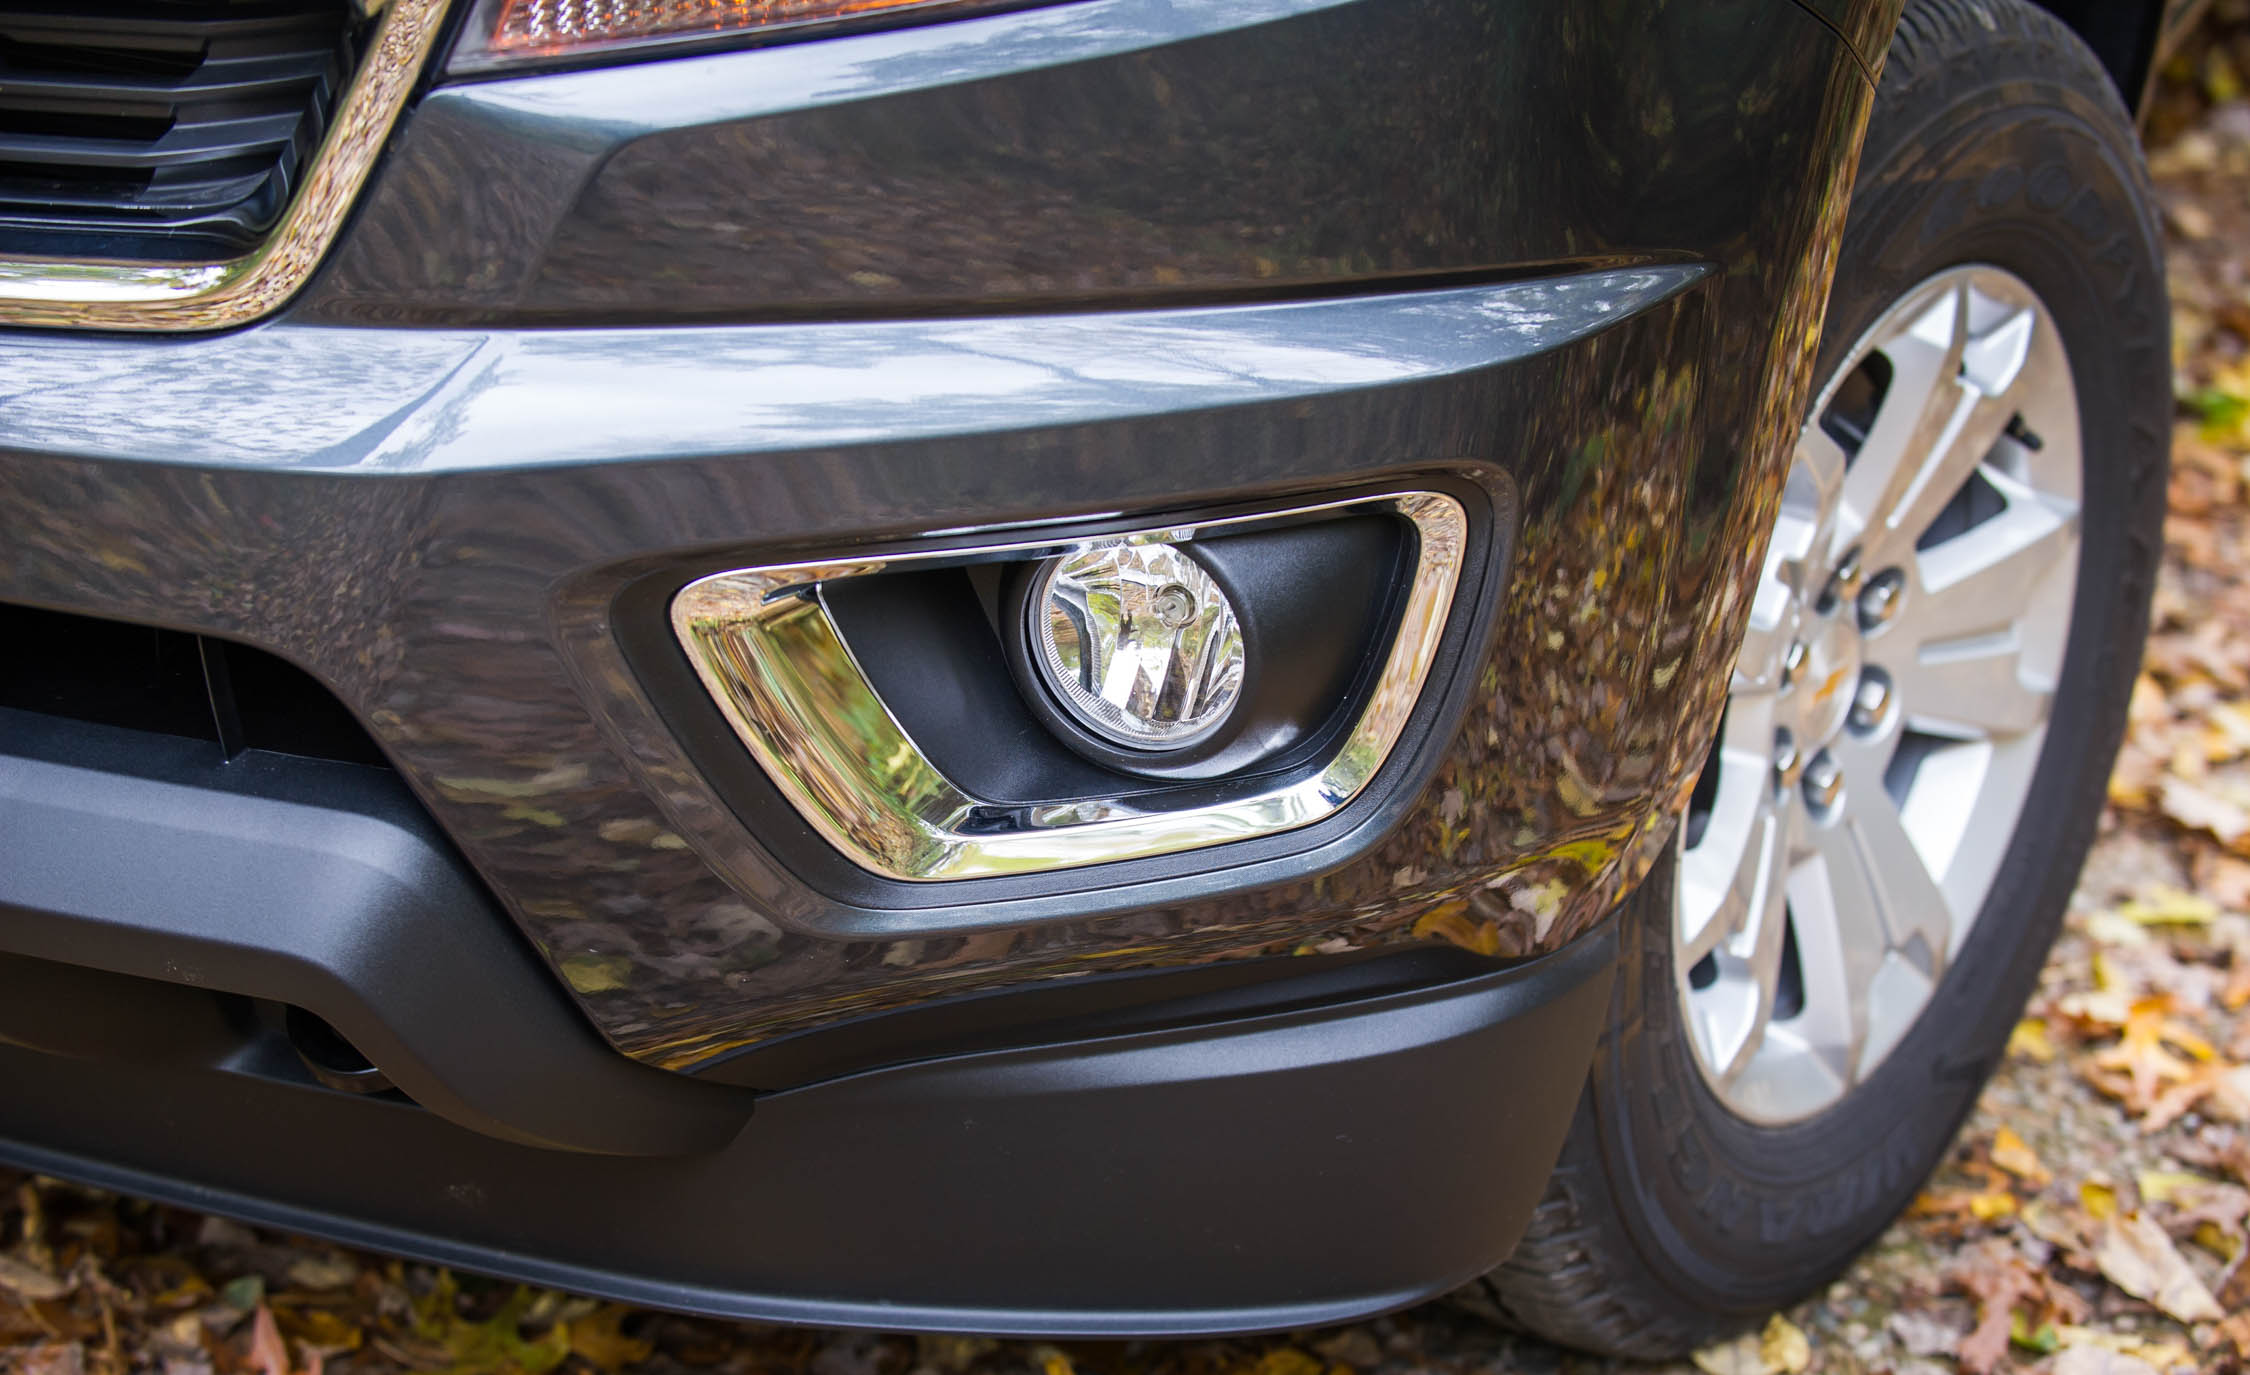 2017 Chevrolet Colorado Exterior View Foglamp (Photo 11 of 41)